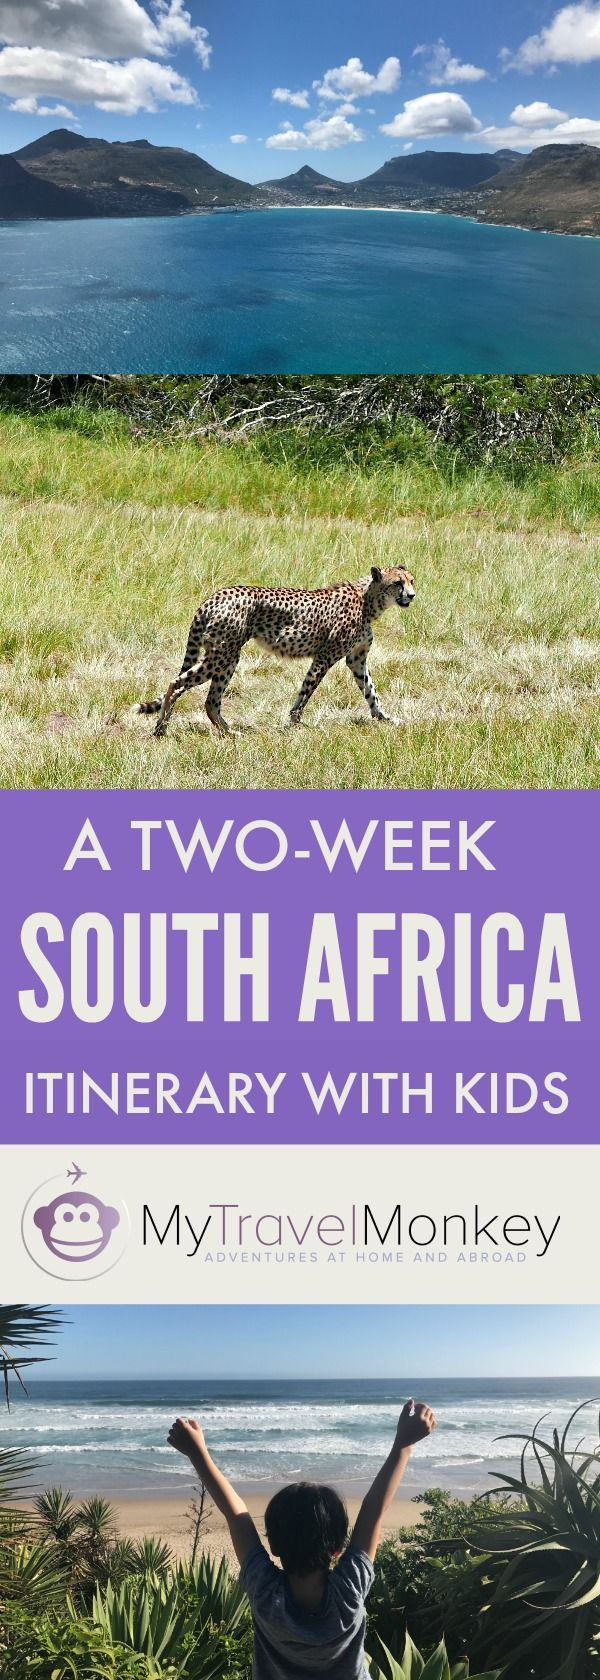 A Two-Week South Africa Trip Itinerary With Kids   South Africa   Garden Route   Itinerary   Road Trip   Travel With Kids   Family Travel   Vacations in South Africa 